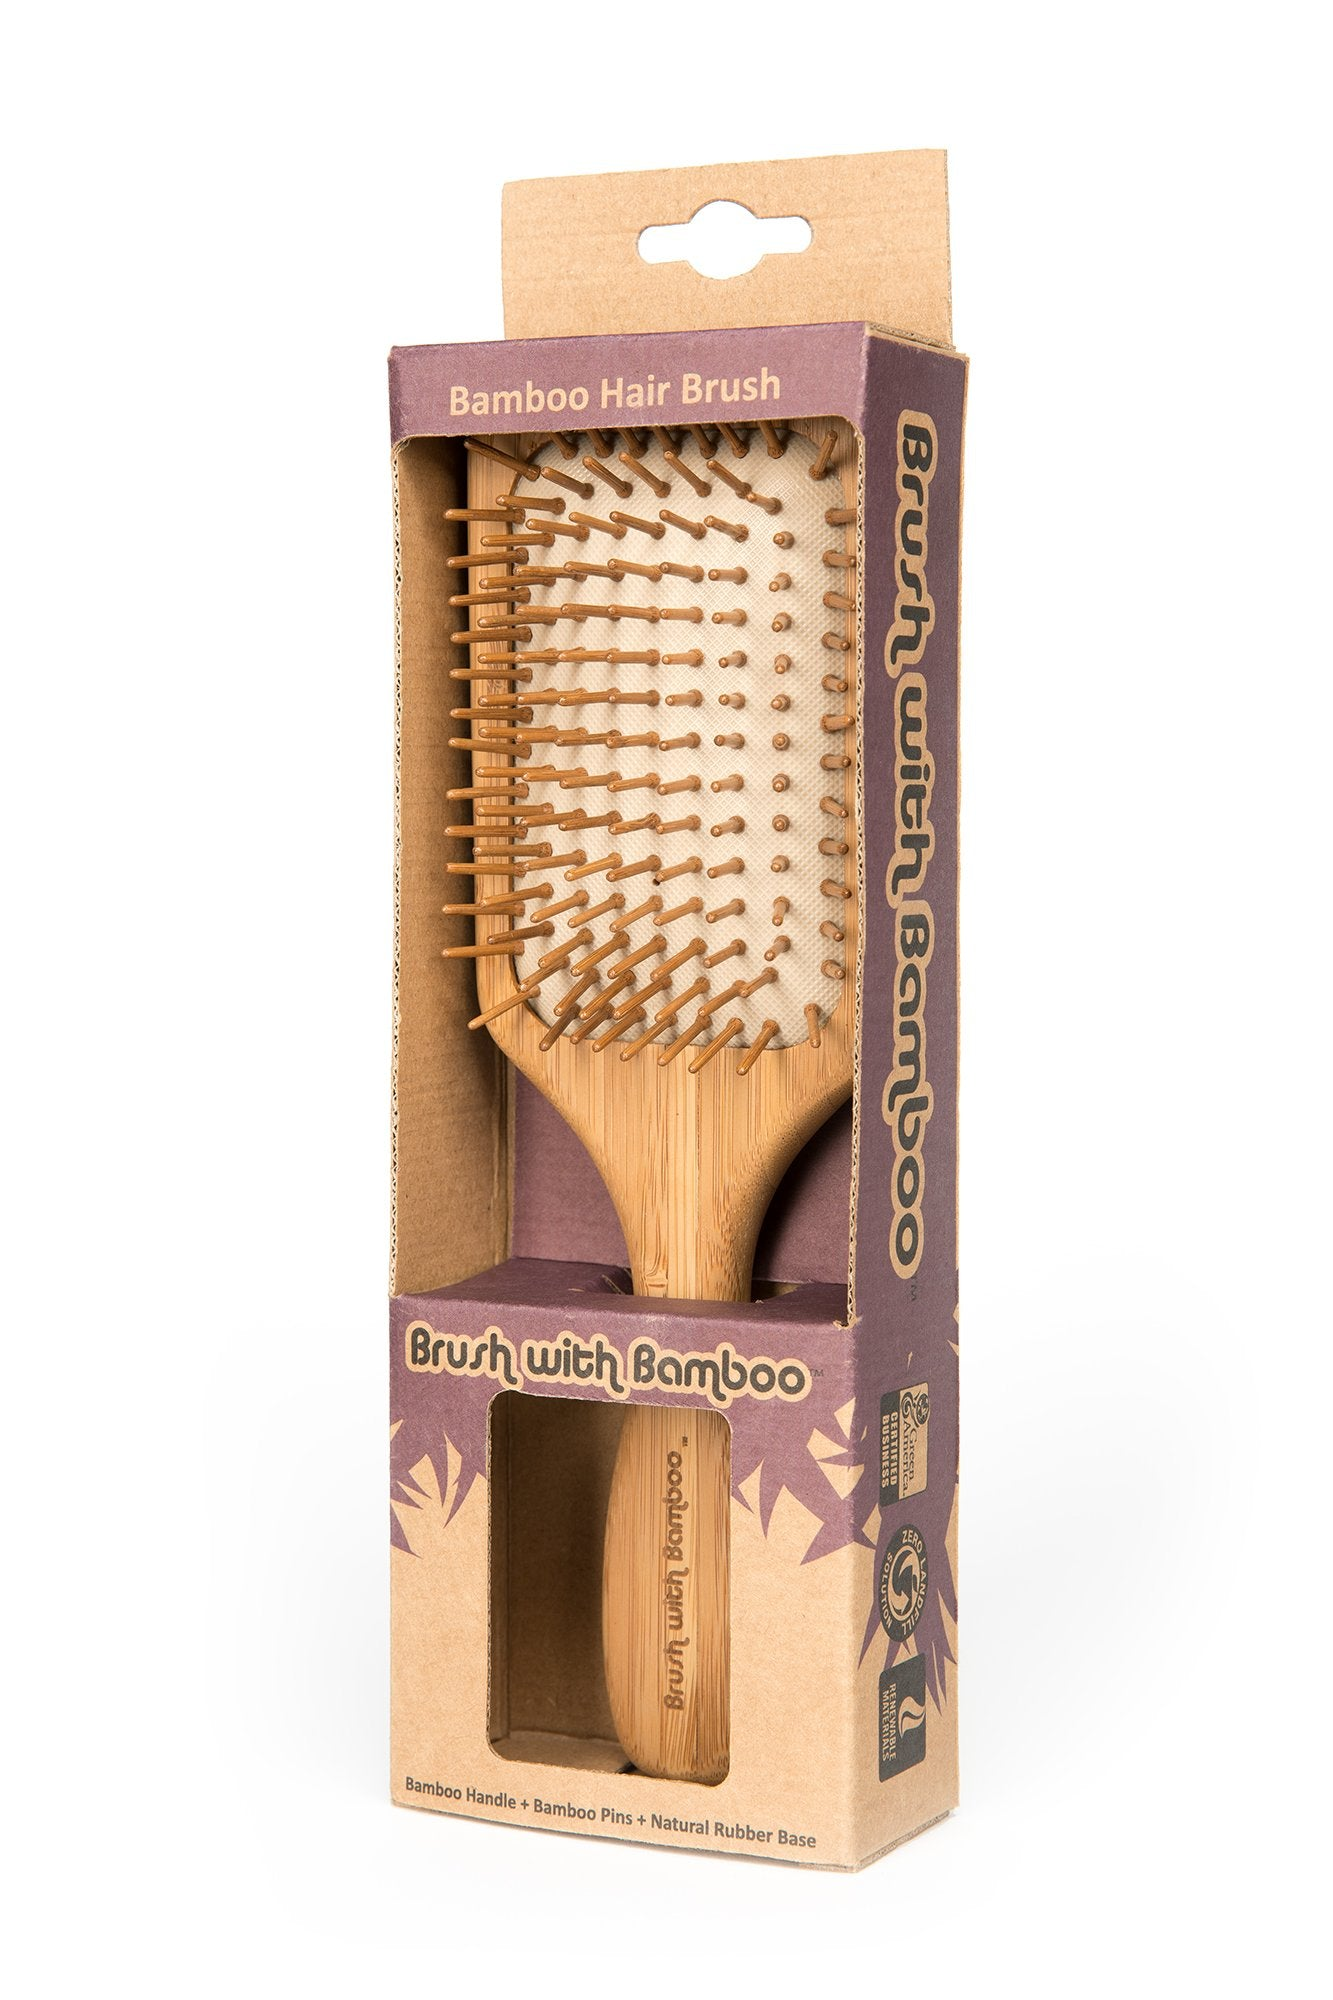 This bamboo hairbrush is a zero-waste alternative to hairbrushes made with synthetic materials. It has a natural and luxurious feel and functions exactly like conventional hairbrushes. Brush pins are pure bamboo Cushion base is natural rubber Bamboo handle has a beeswax finish.  It's packaged in compostable, paper packaging.